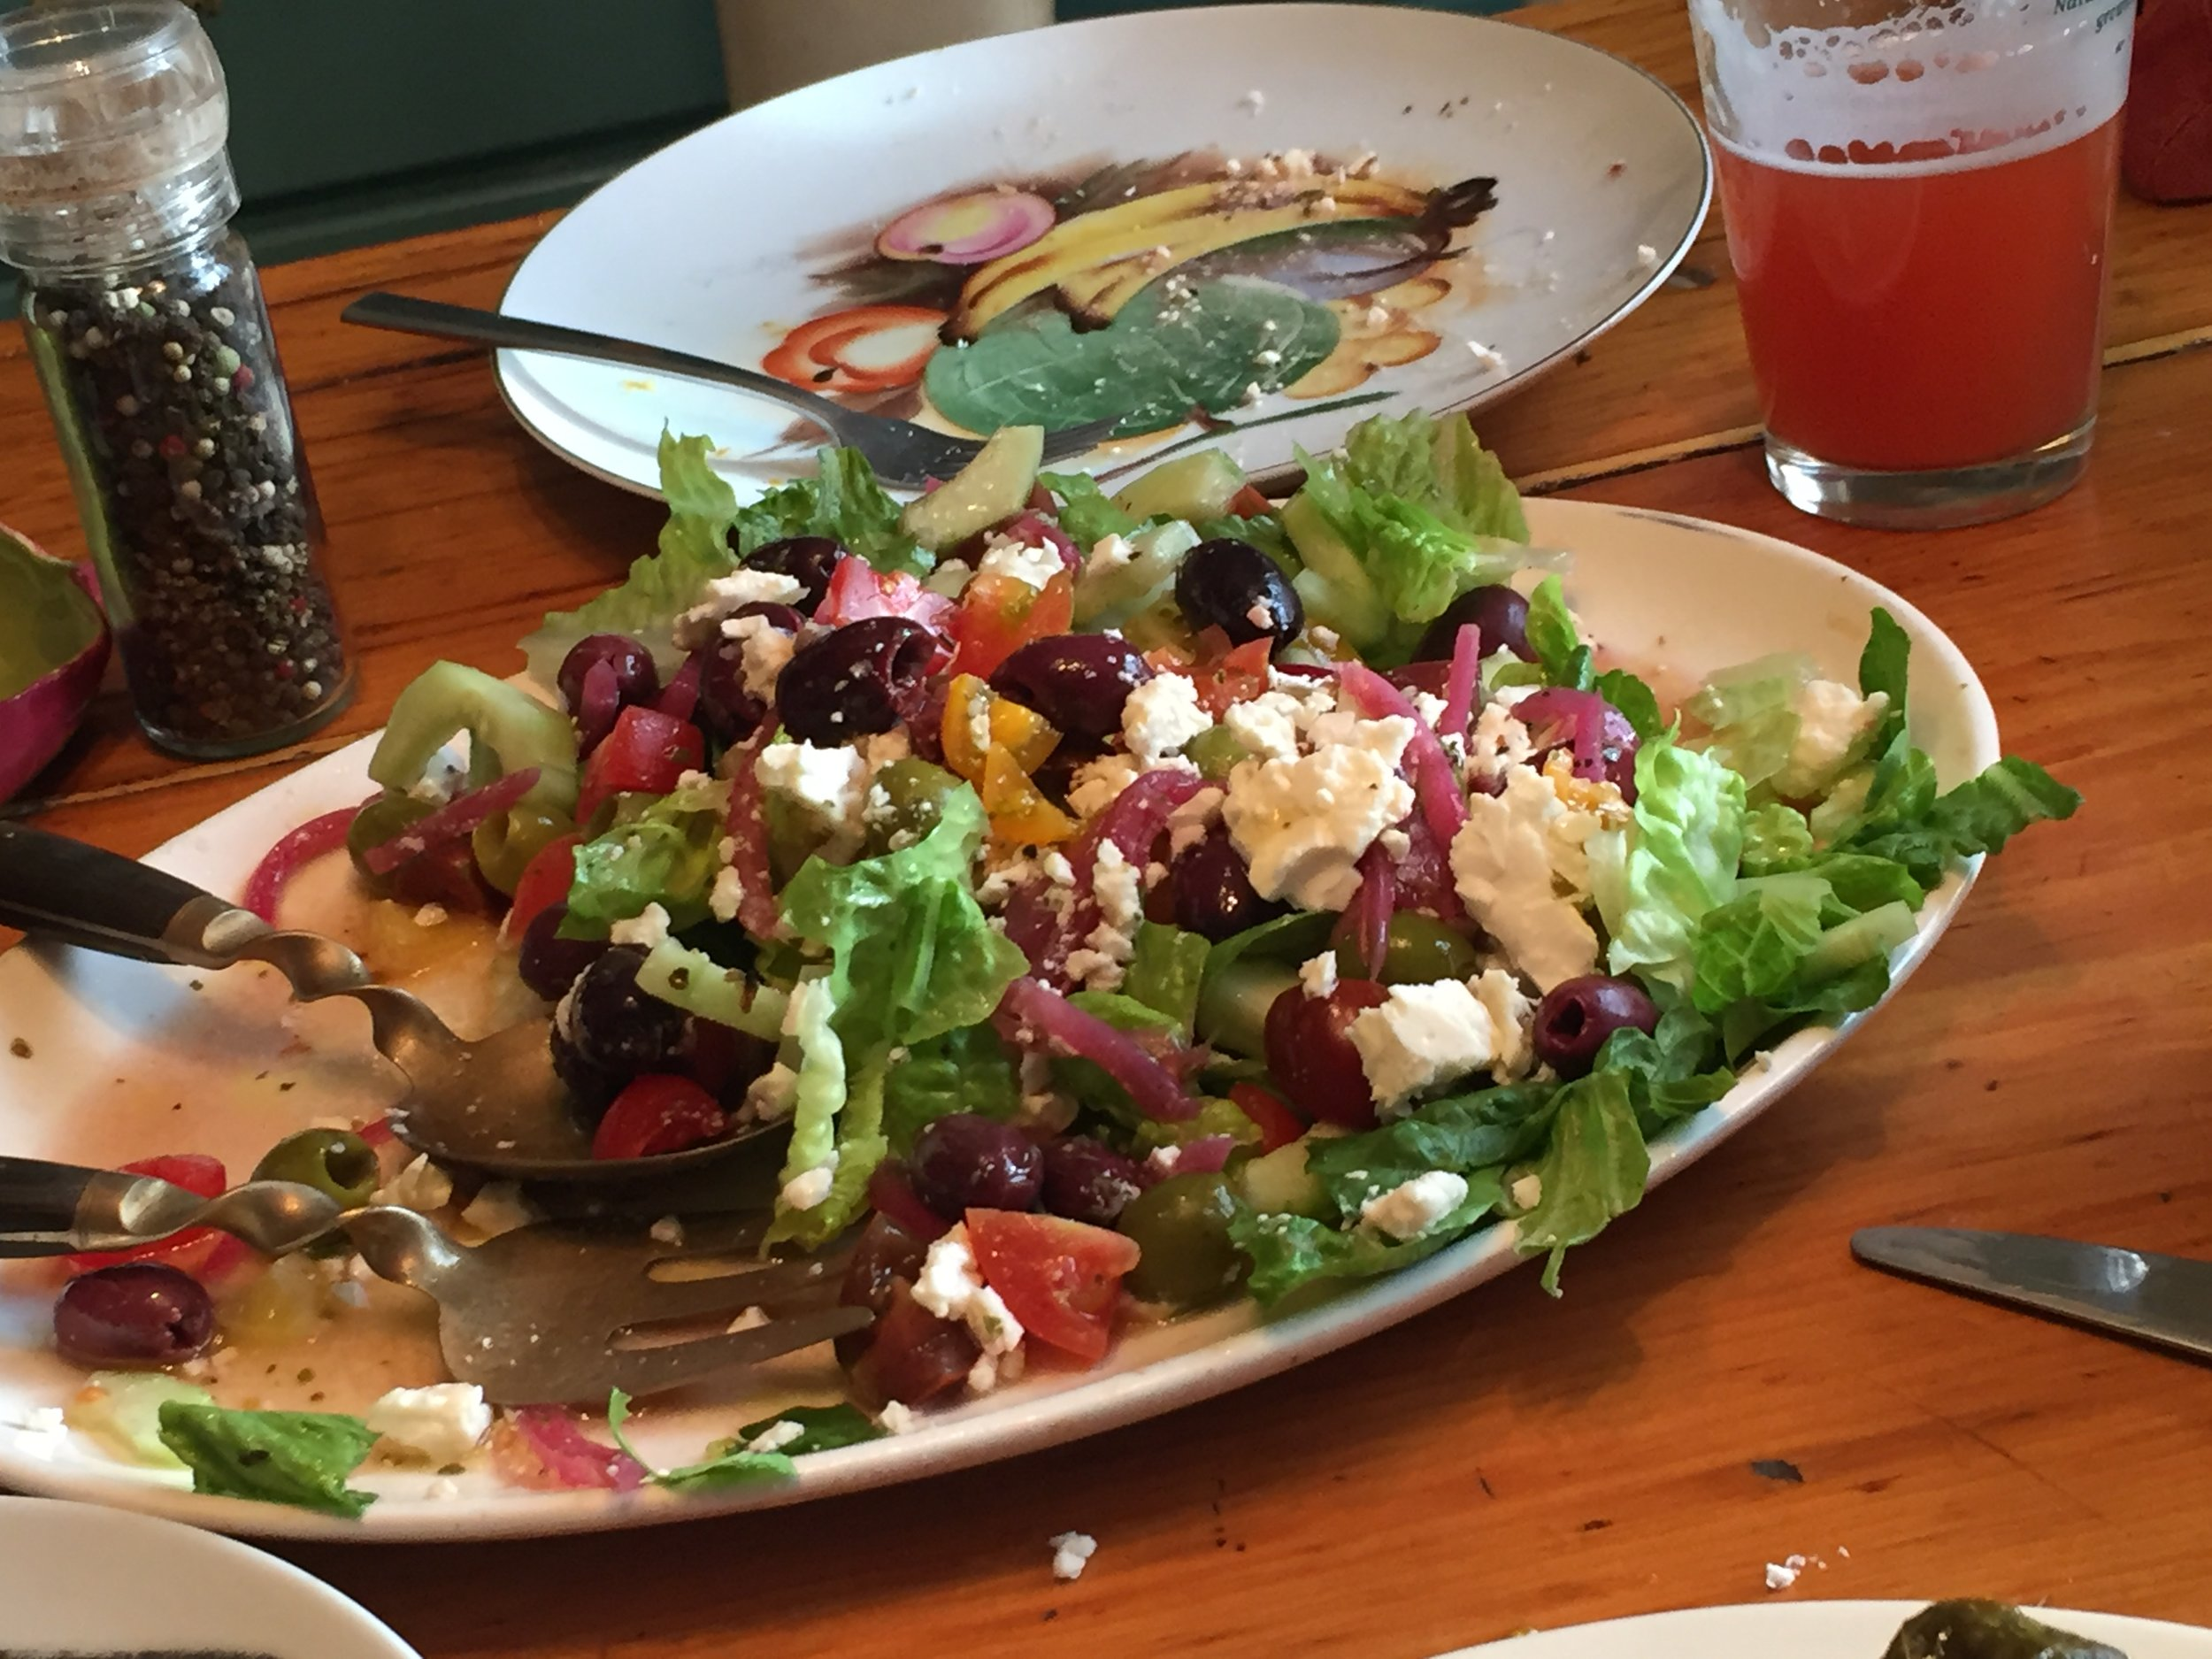 Photo Credit: Carly J. Turner - This salad is full of flavor!